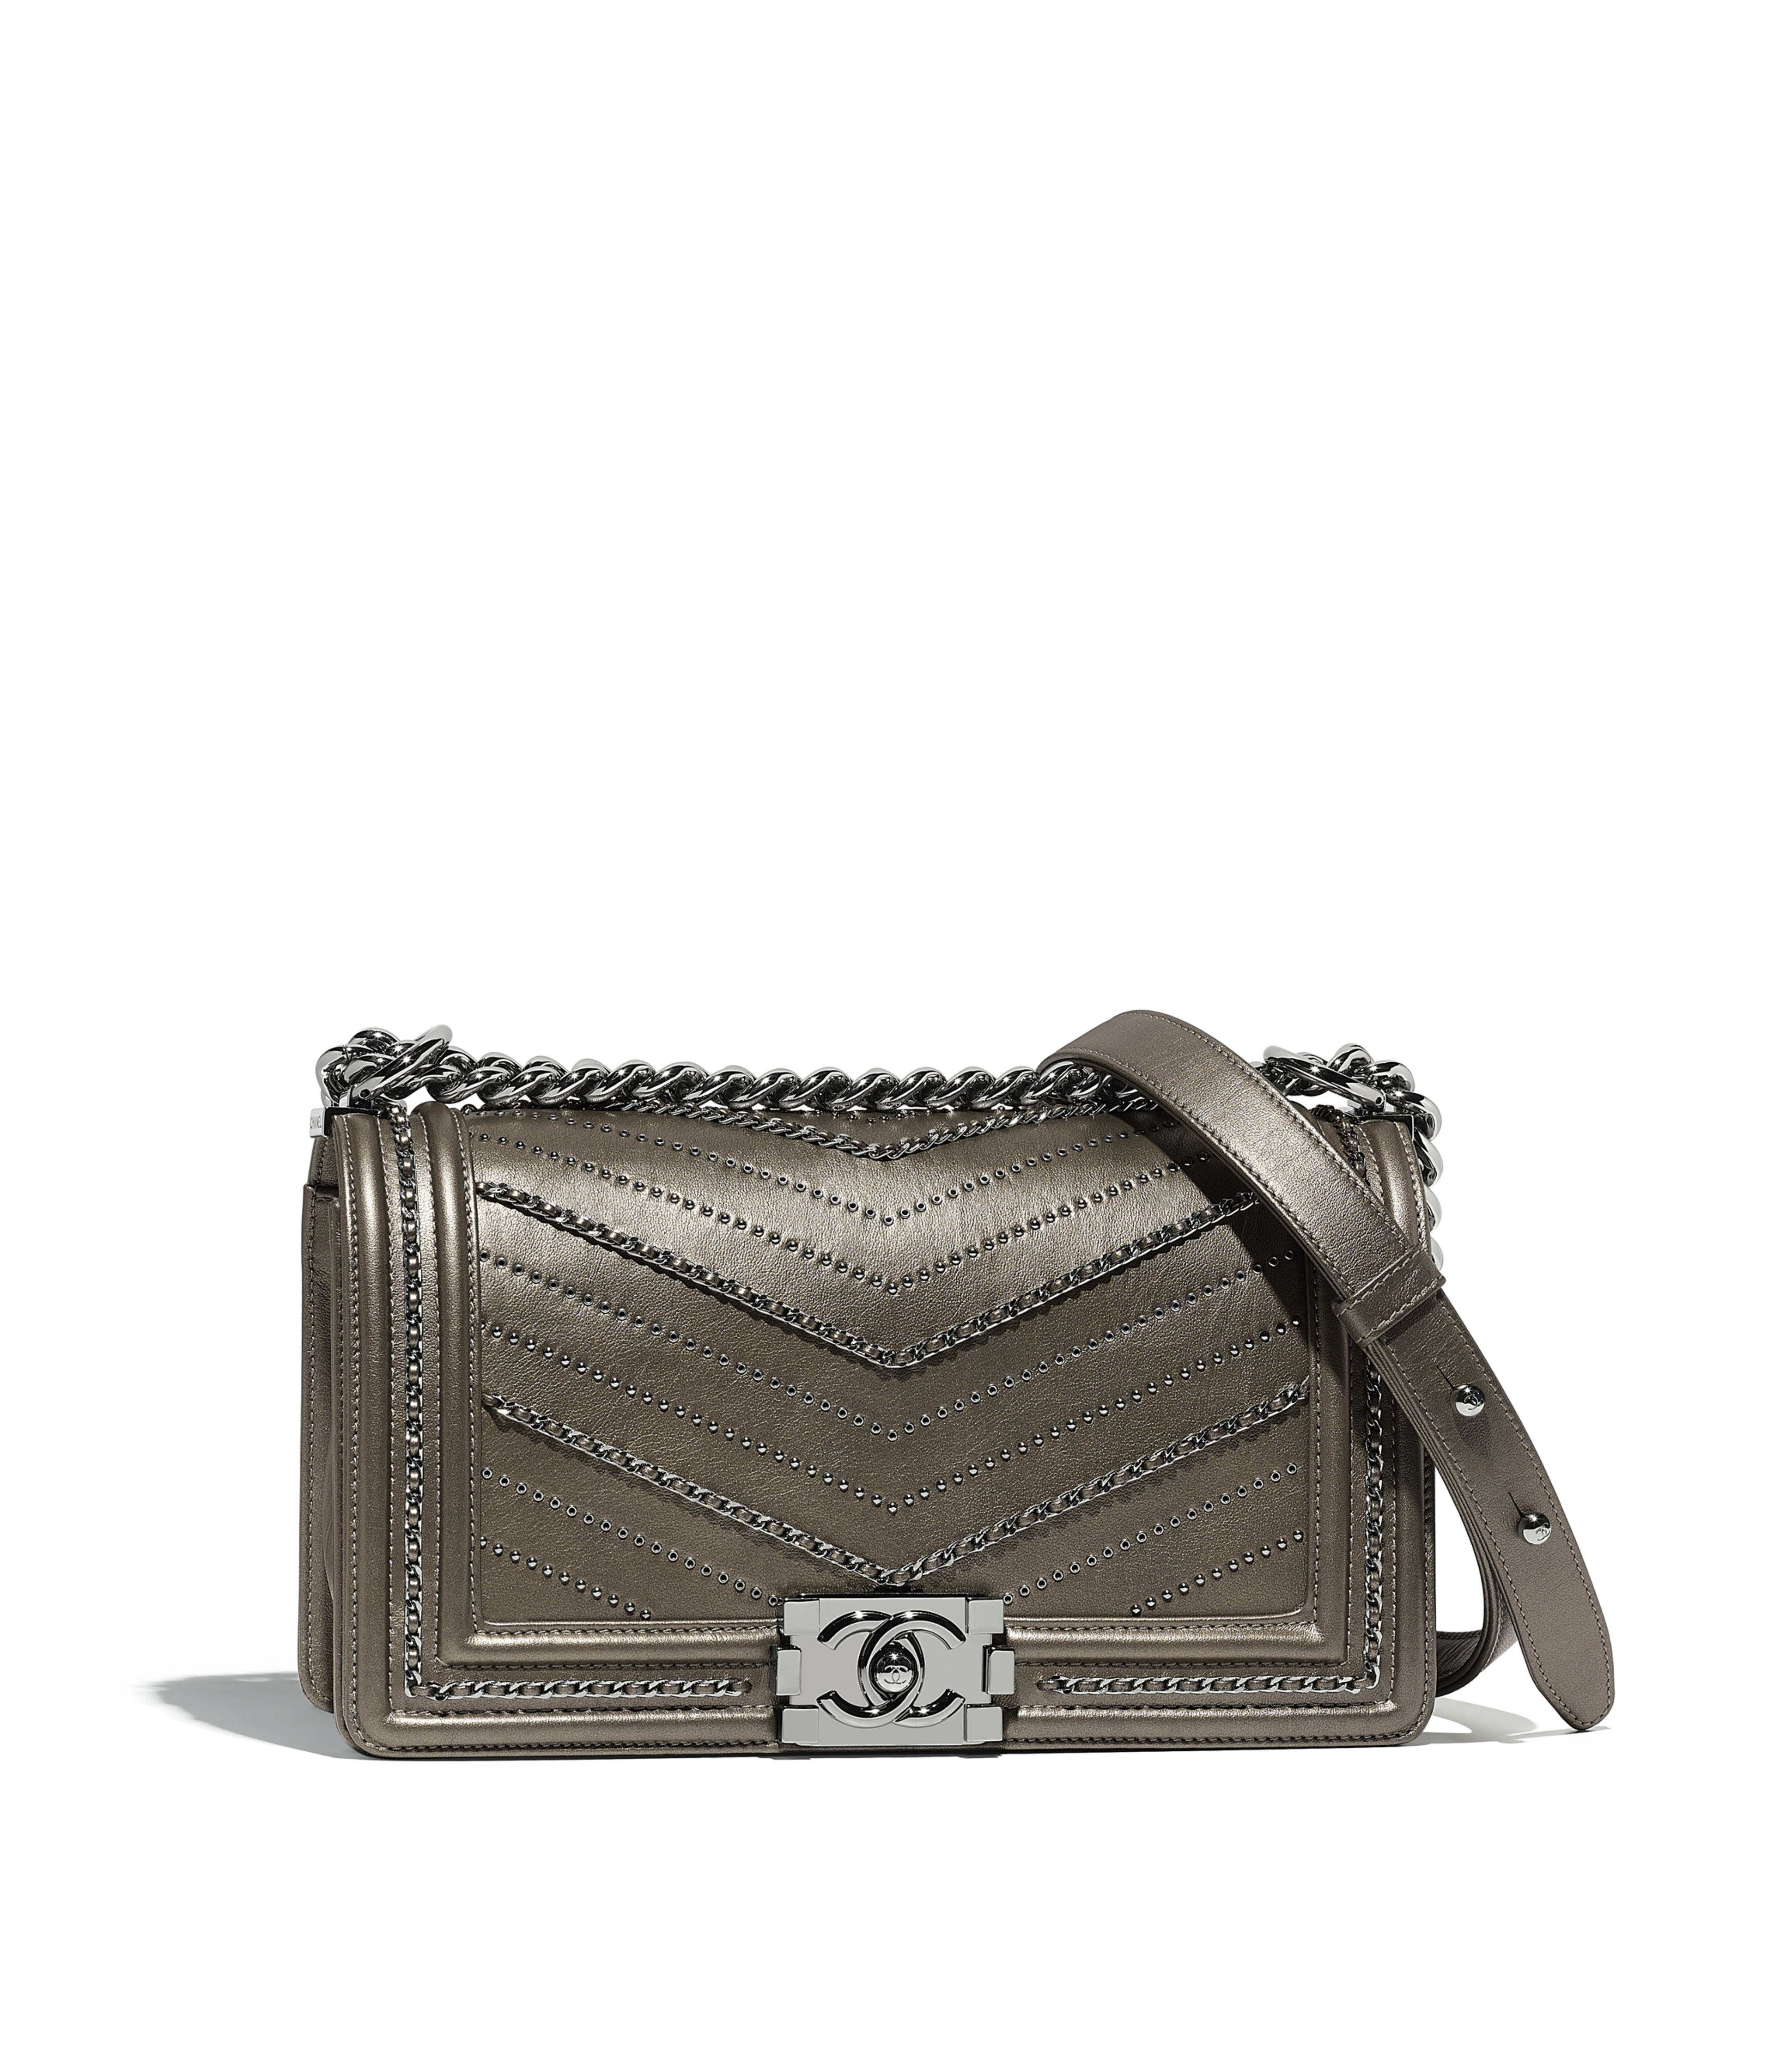 6646ff245fde Chanel Boy Chanel Handbag Calfskin & Ruthenium-finish Metal ...